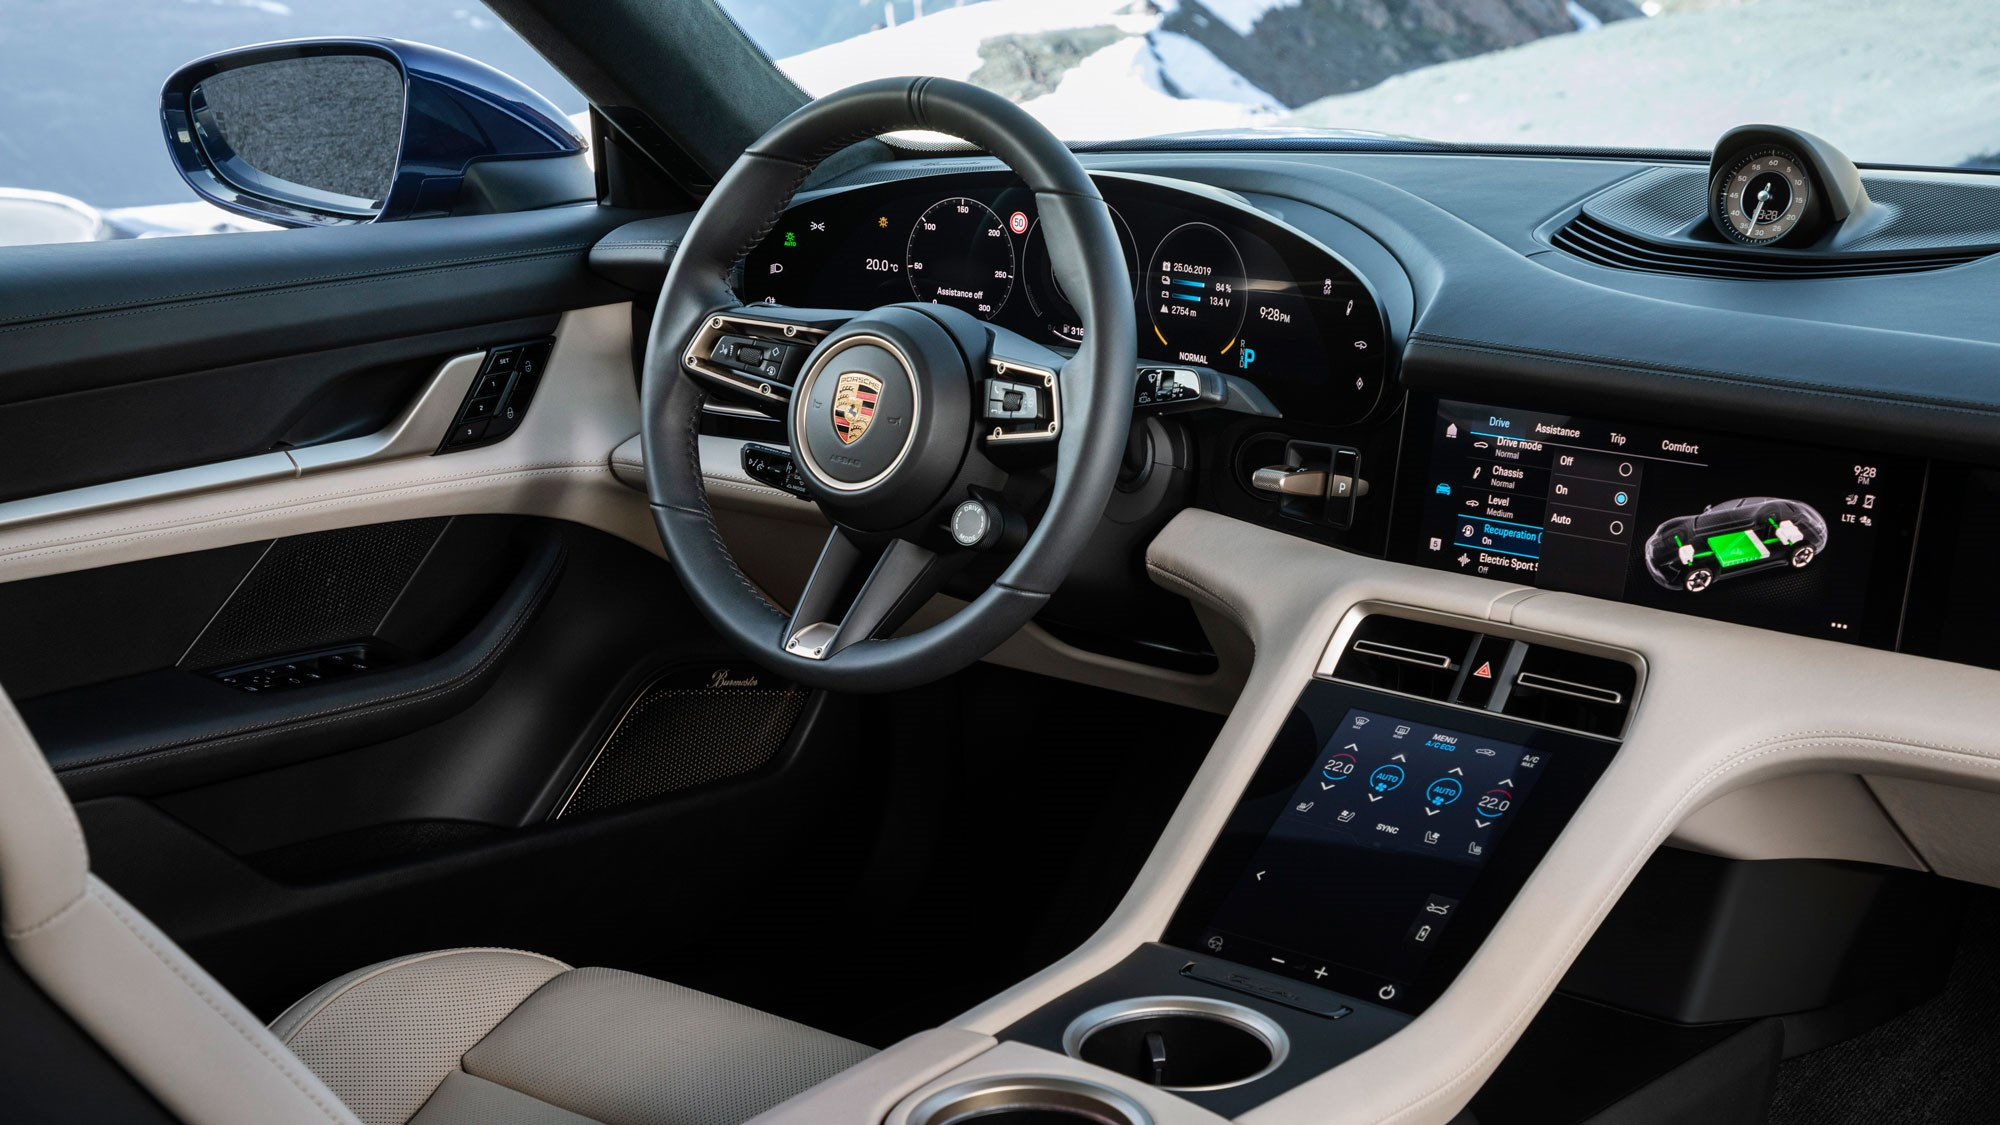 Porsche Taycan specs, pricing and more on new high,tech